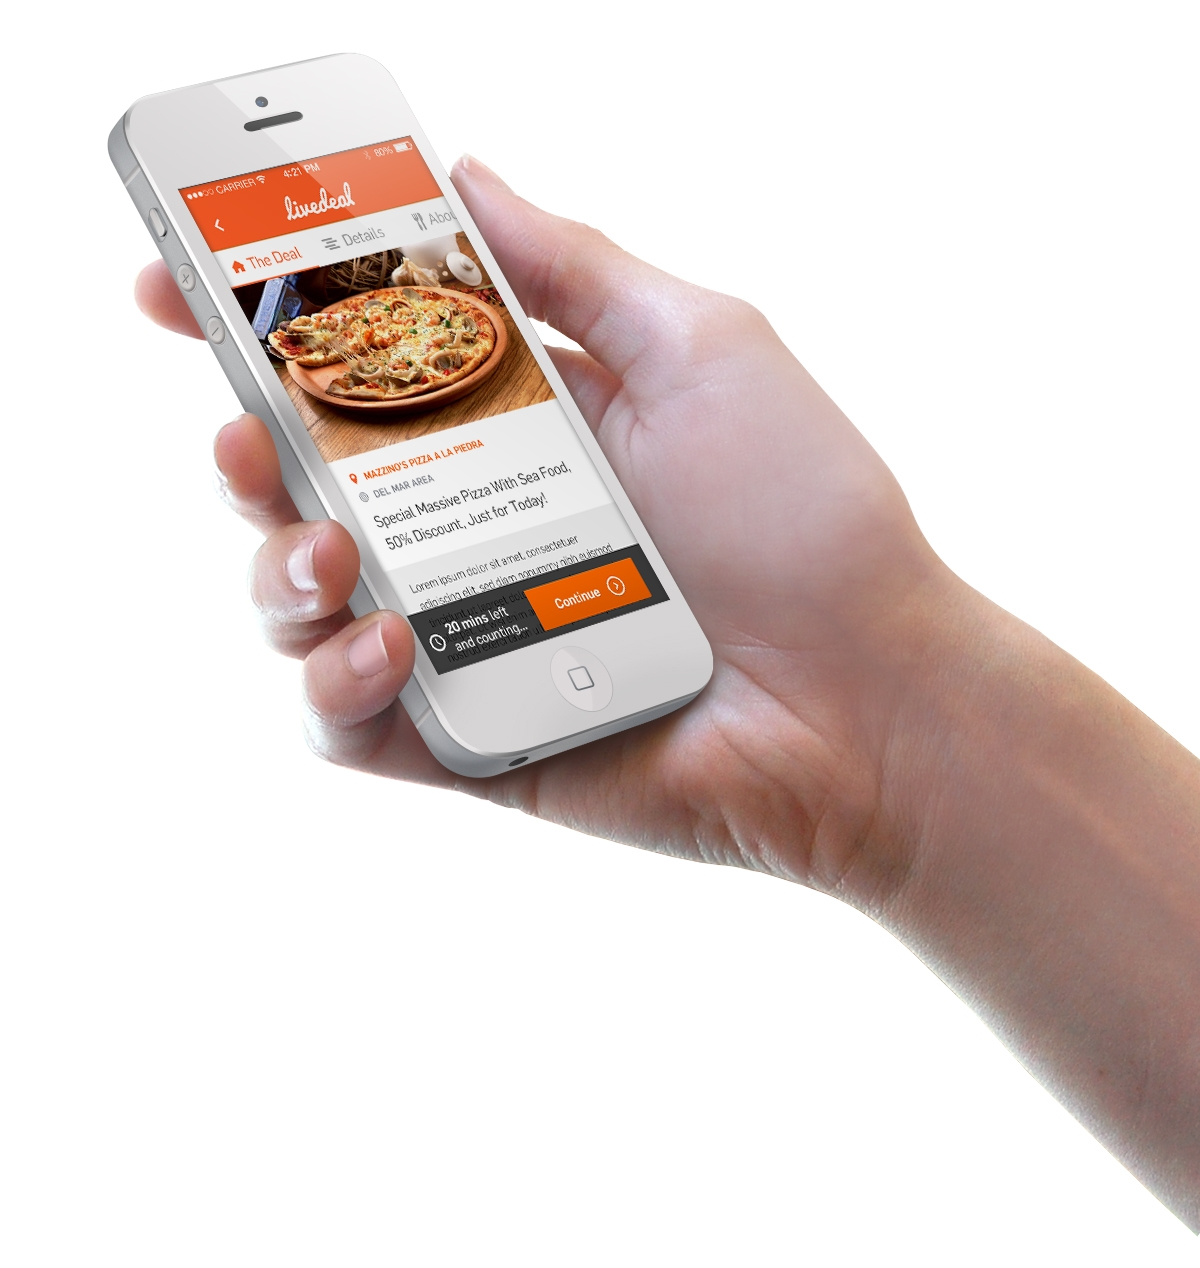 www.LiveDeal.com is the world's first deal engine... a real-time, online marketplace that connects consumers with local restaurants. (Photo: Business Wire)